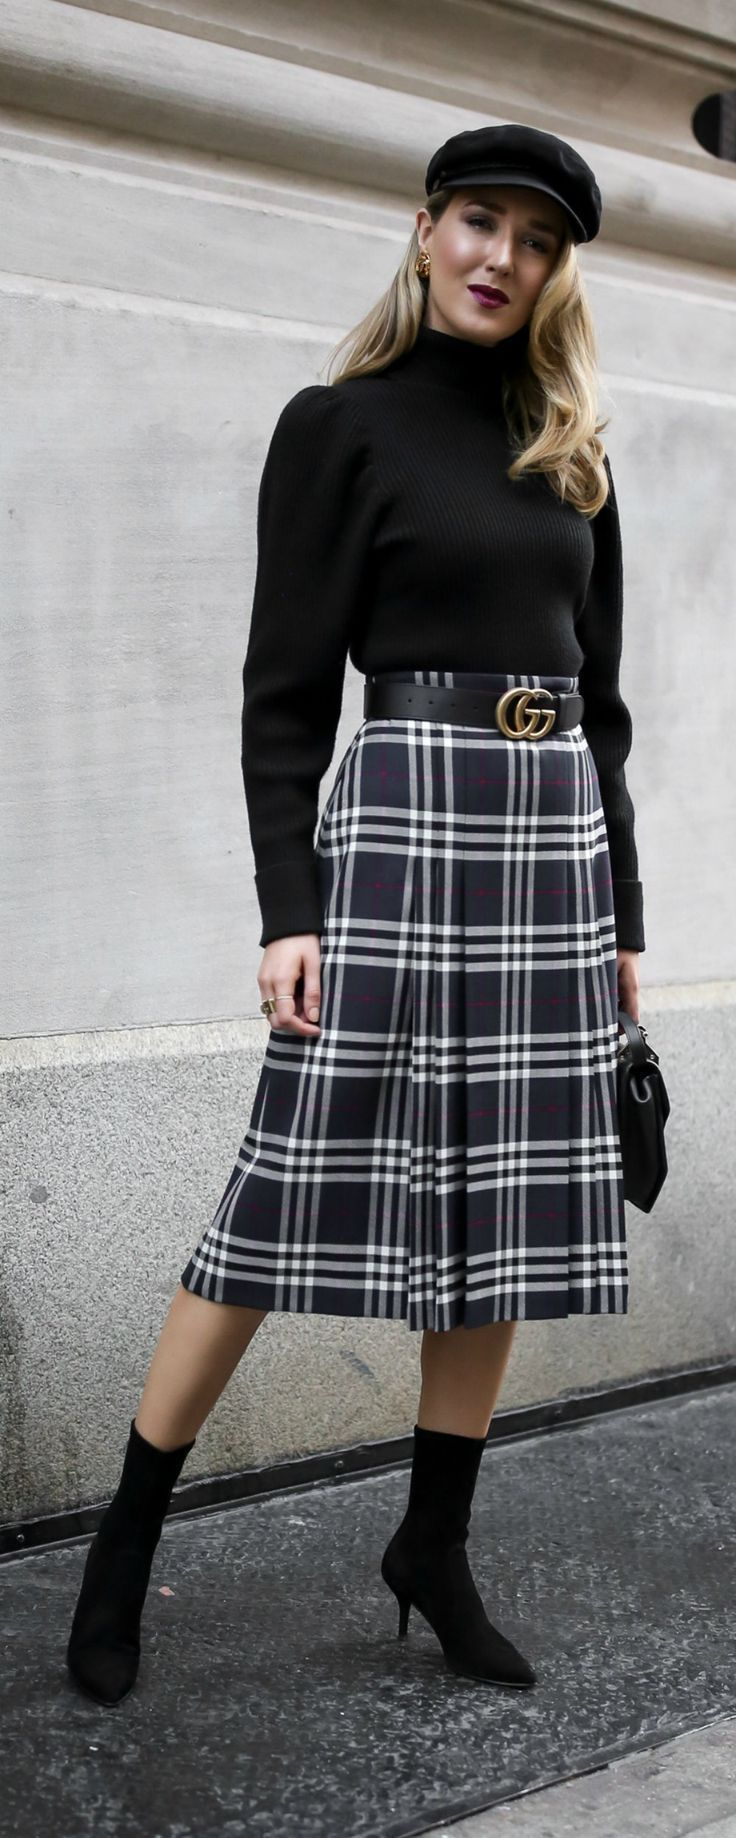 Classic Fall Style //  Pleated plaid midi skirt, black puffed-shoulder turtleneck, black sock boots, baker boy cap and black leather waist belt {Burberry, Anthropologie, Stuart Weitzman, Gucci, M2Malletier, Brixton, classic style, fall style, classy dressing, wear to work, casual office, casual Friday, fashion blogger, street style}